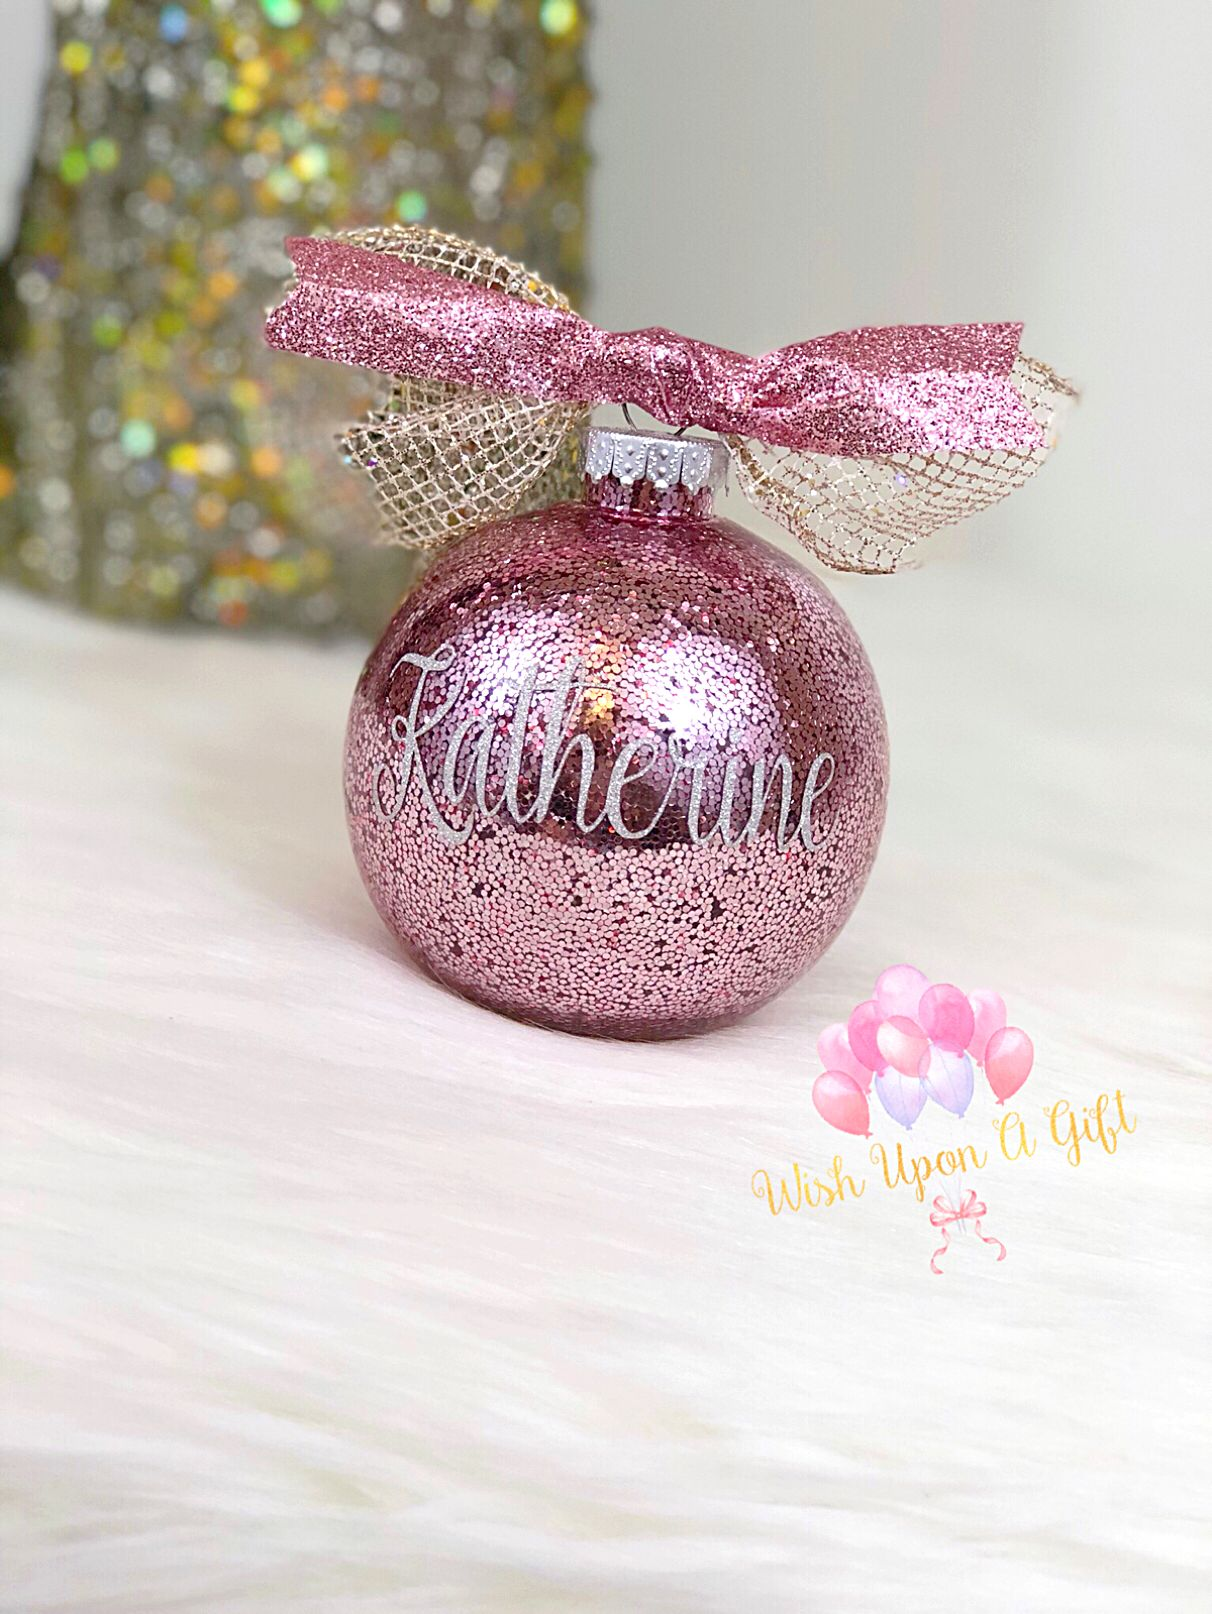 custom made personalized christmas ornament personalized ornaments